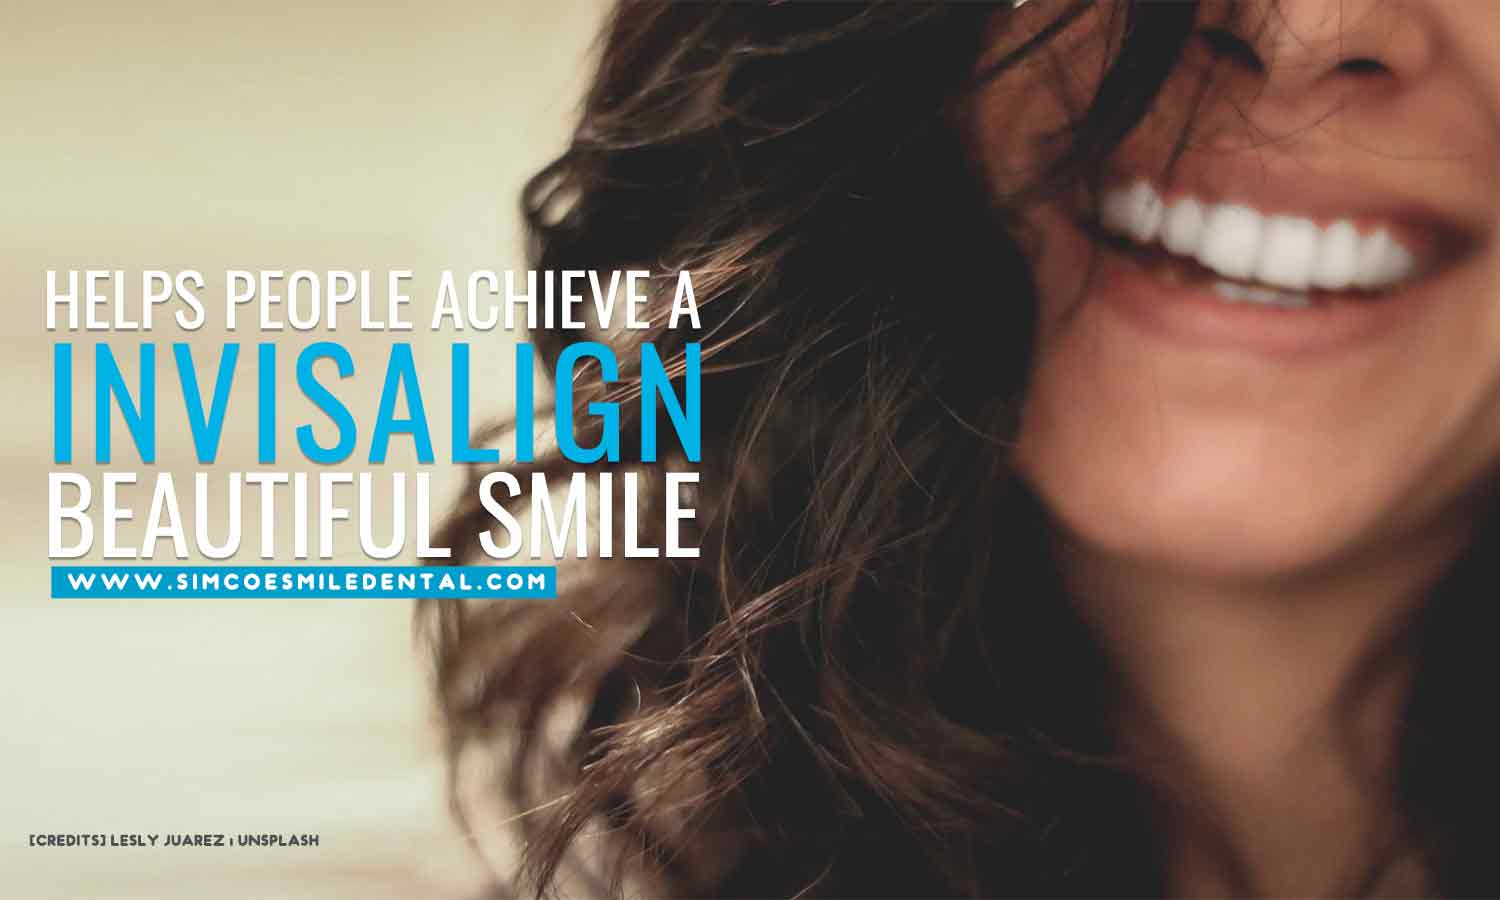 Invisalign-helps-people-achieve-a-beautiful-smile What to Expect From Invisalign Treatment